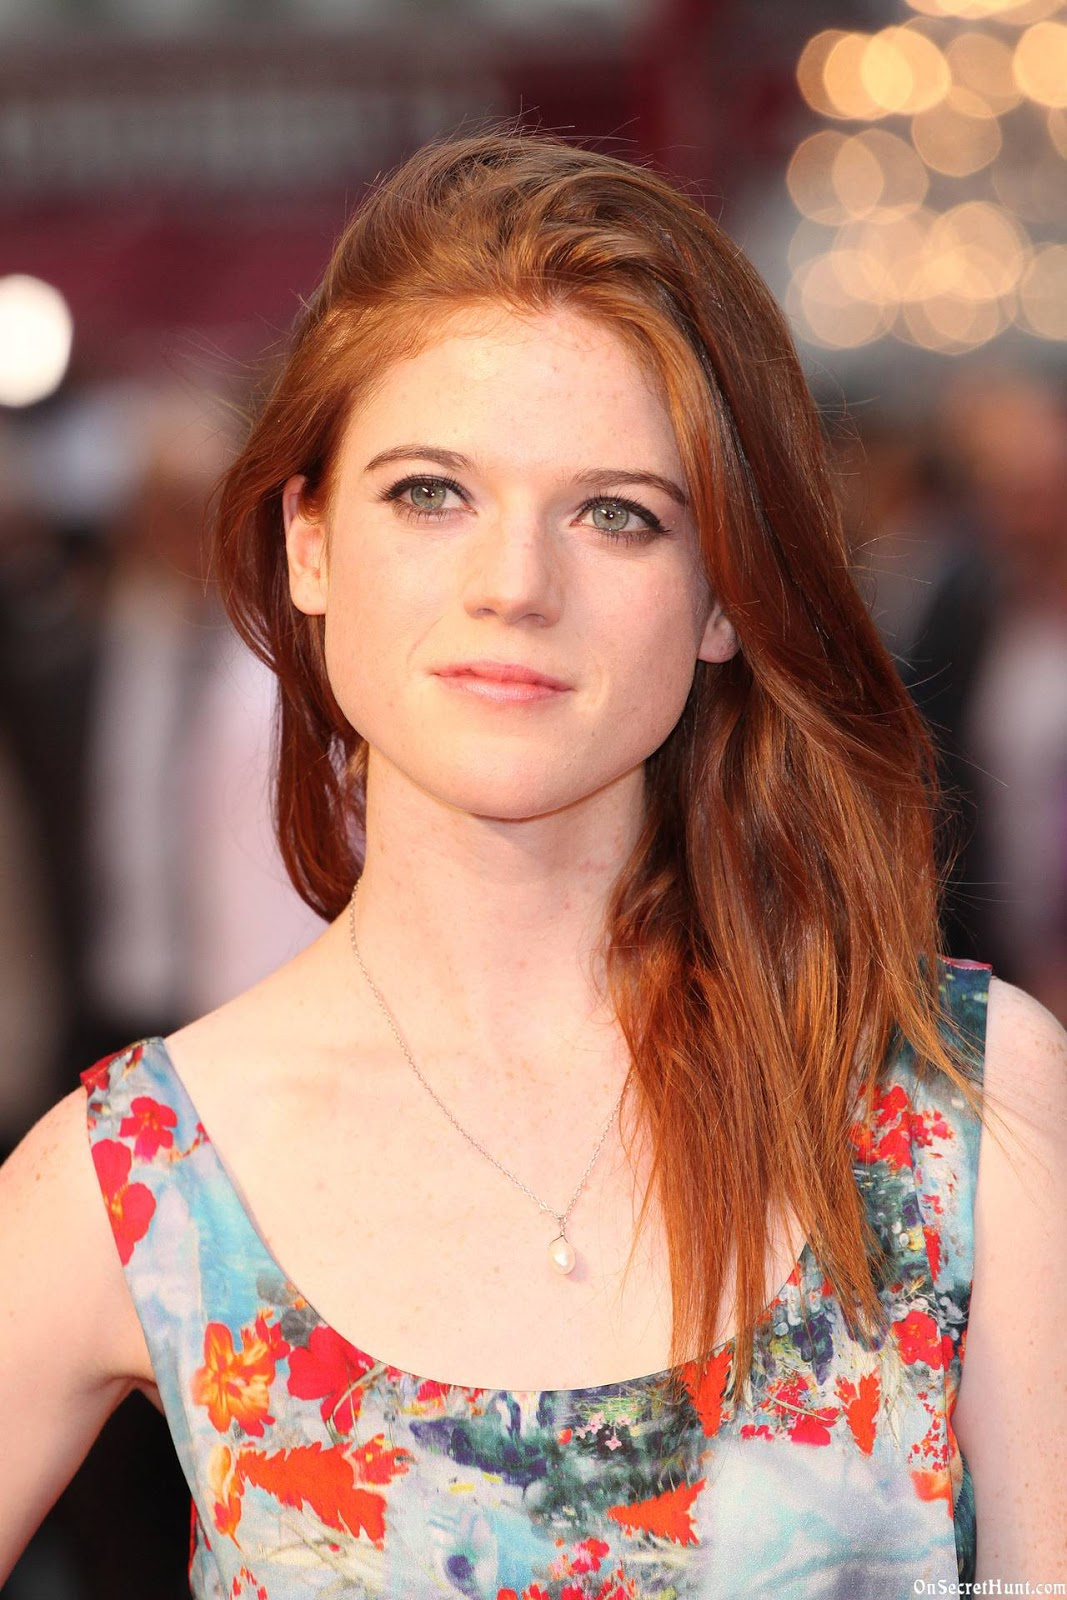 Rose Leslie The Game Of Thrones Actress Hd Wallpaper  Hd -6451